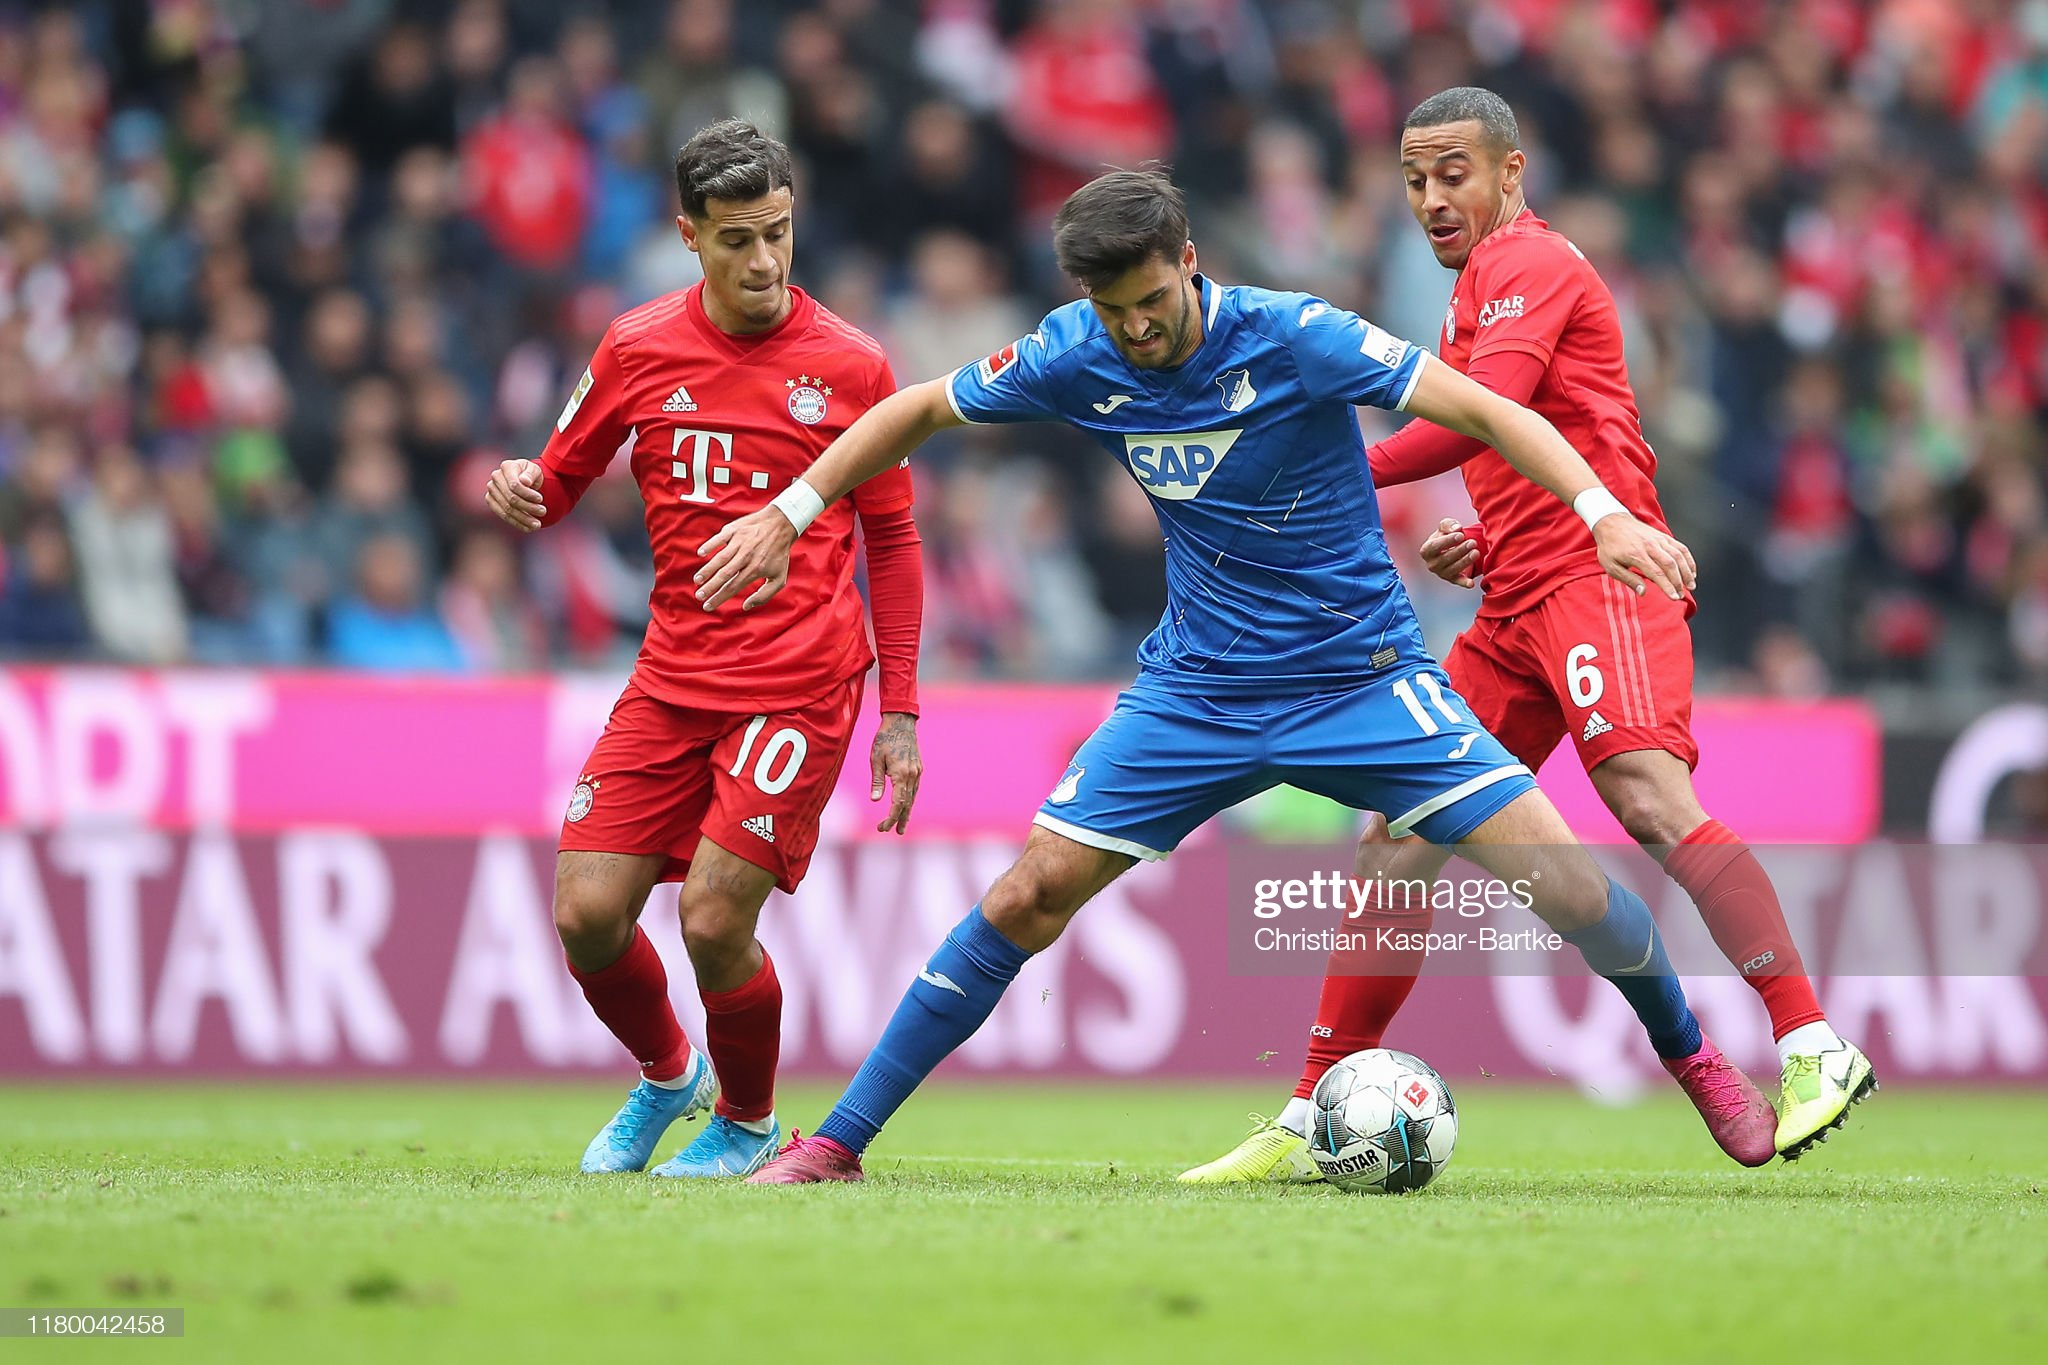 Bayern Munich v Hoffenheim preview, prediction and odds